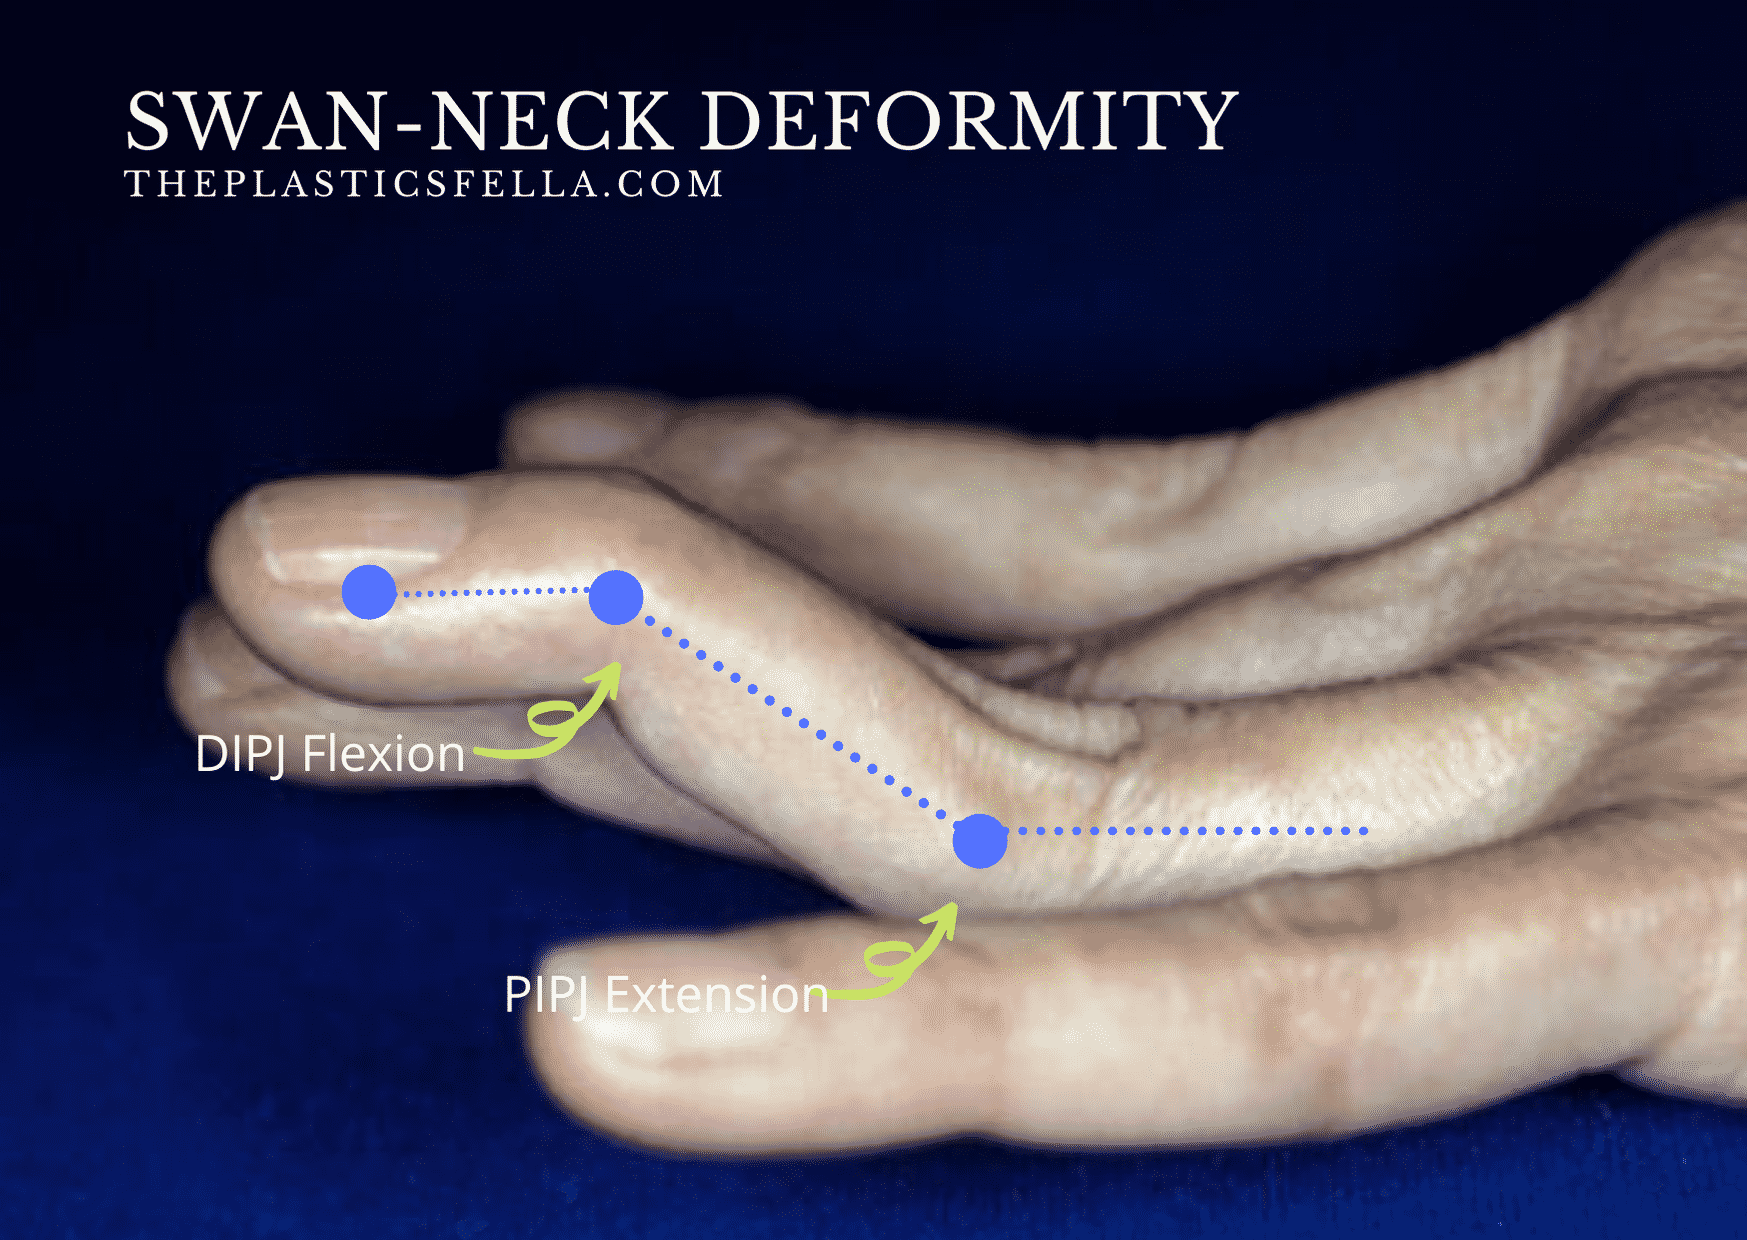 Signs of a Swan-Neck Deformity: DIPJ flexion, PIPJ hyperextension in a patient  with Rheumatoid Hands